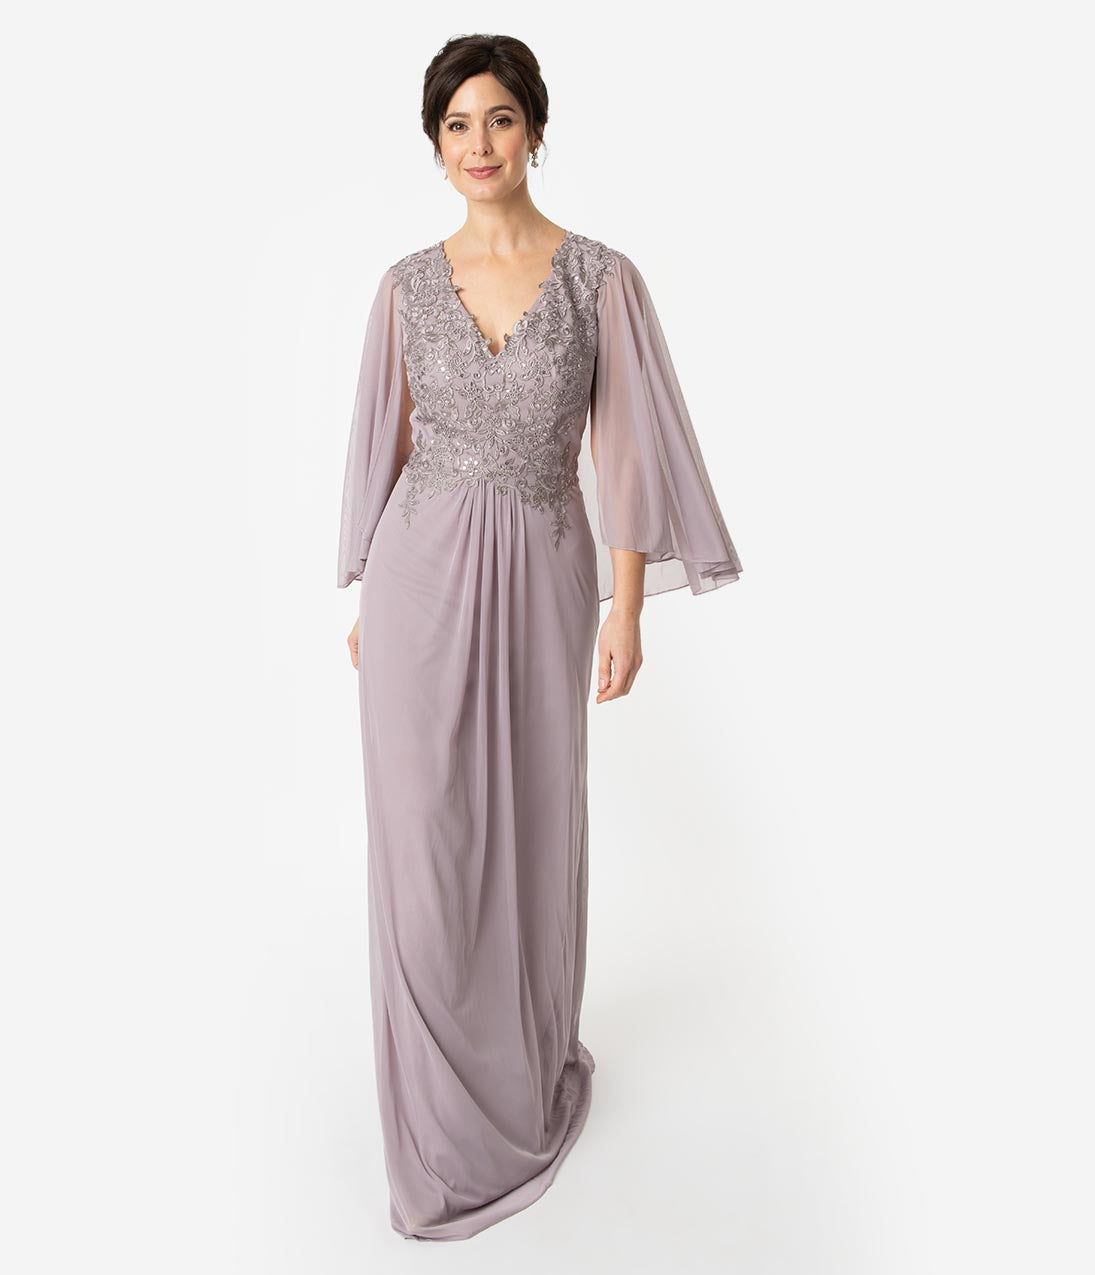 1930s Dresses | 30s Art Deco Dress Mauve Embellished Chiffon Modest Cape Long Dress $172.00 AT vintagedancer.com